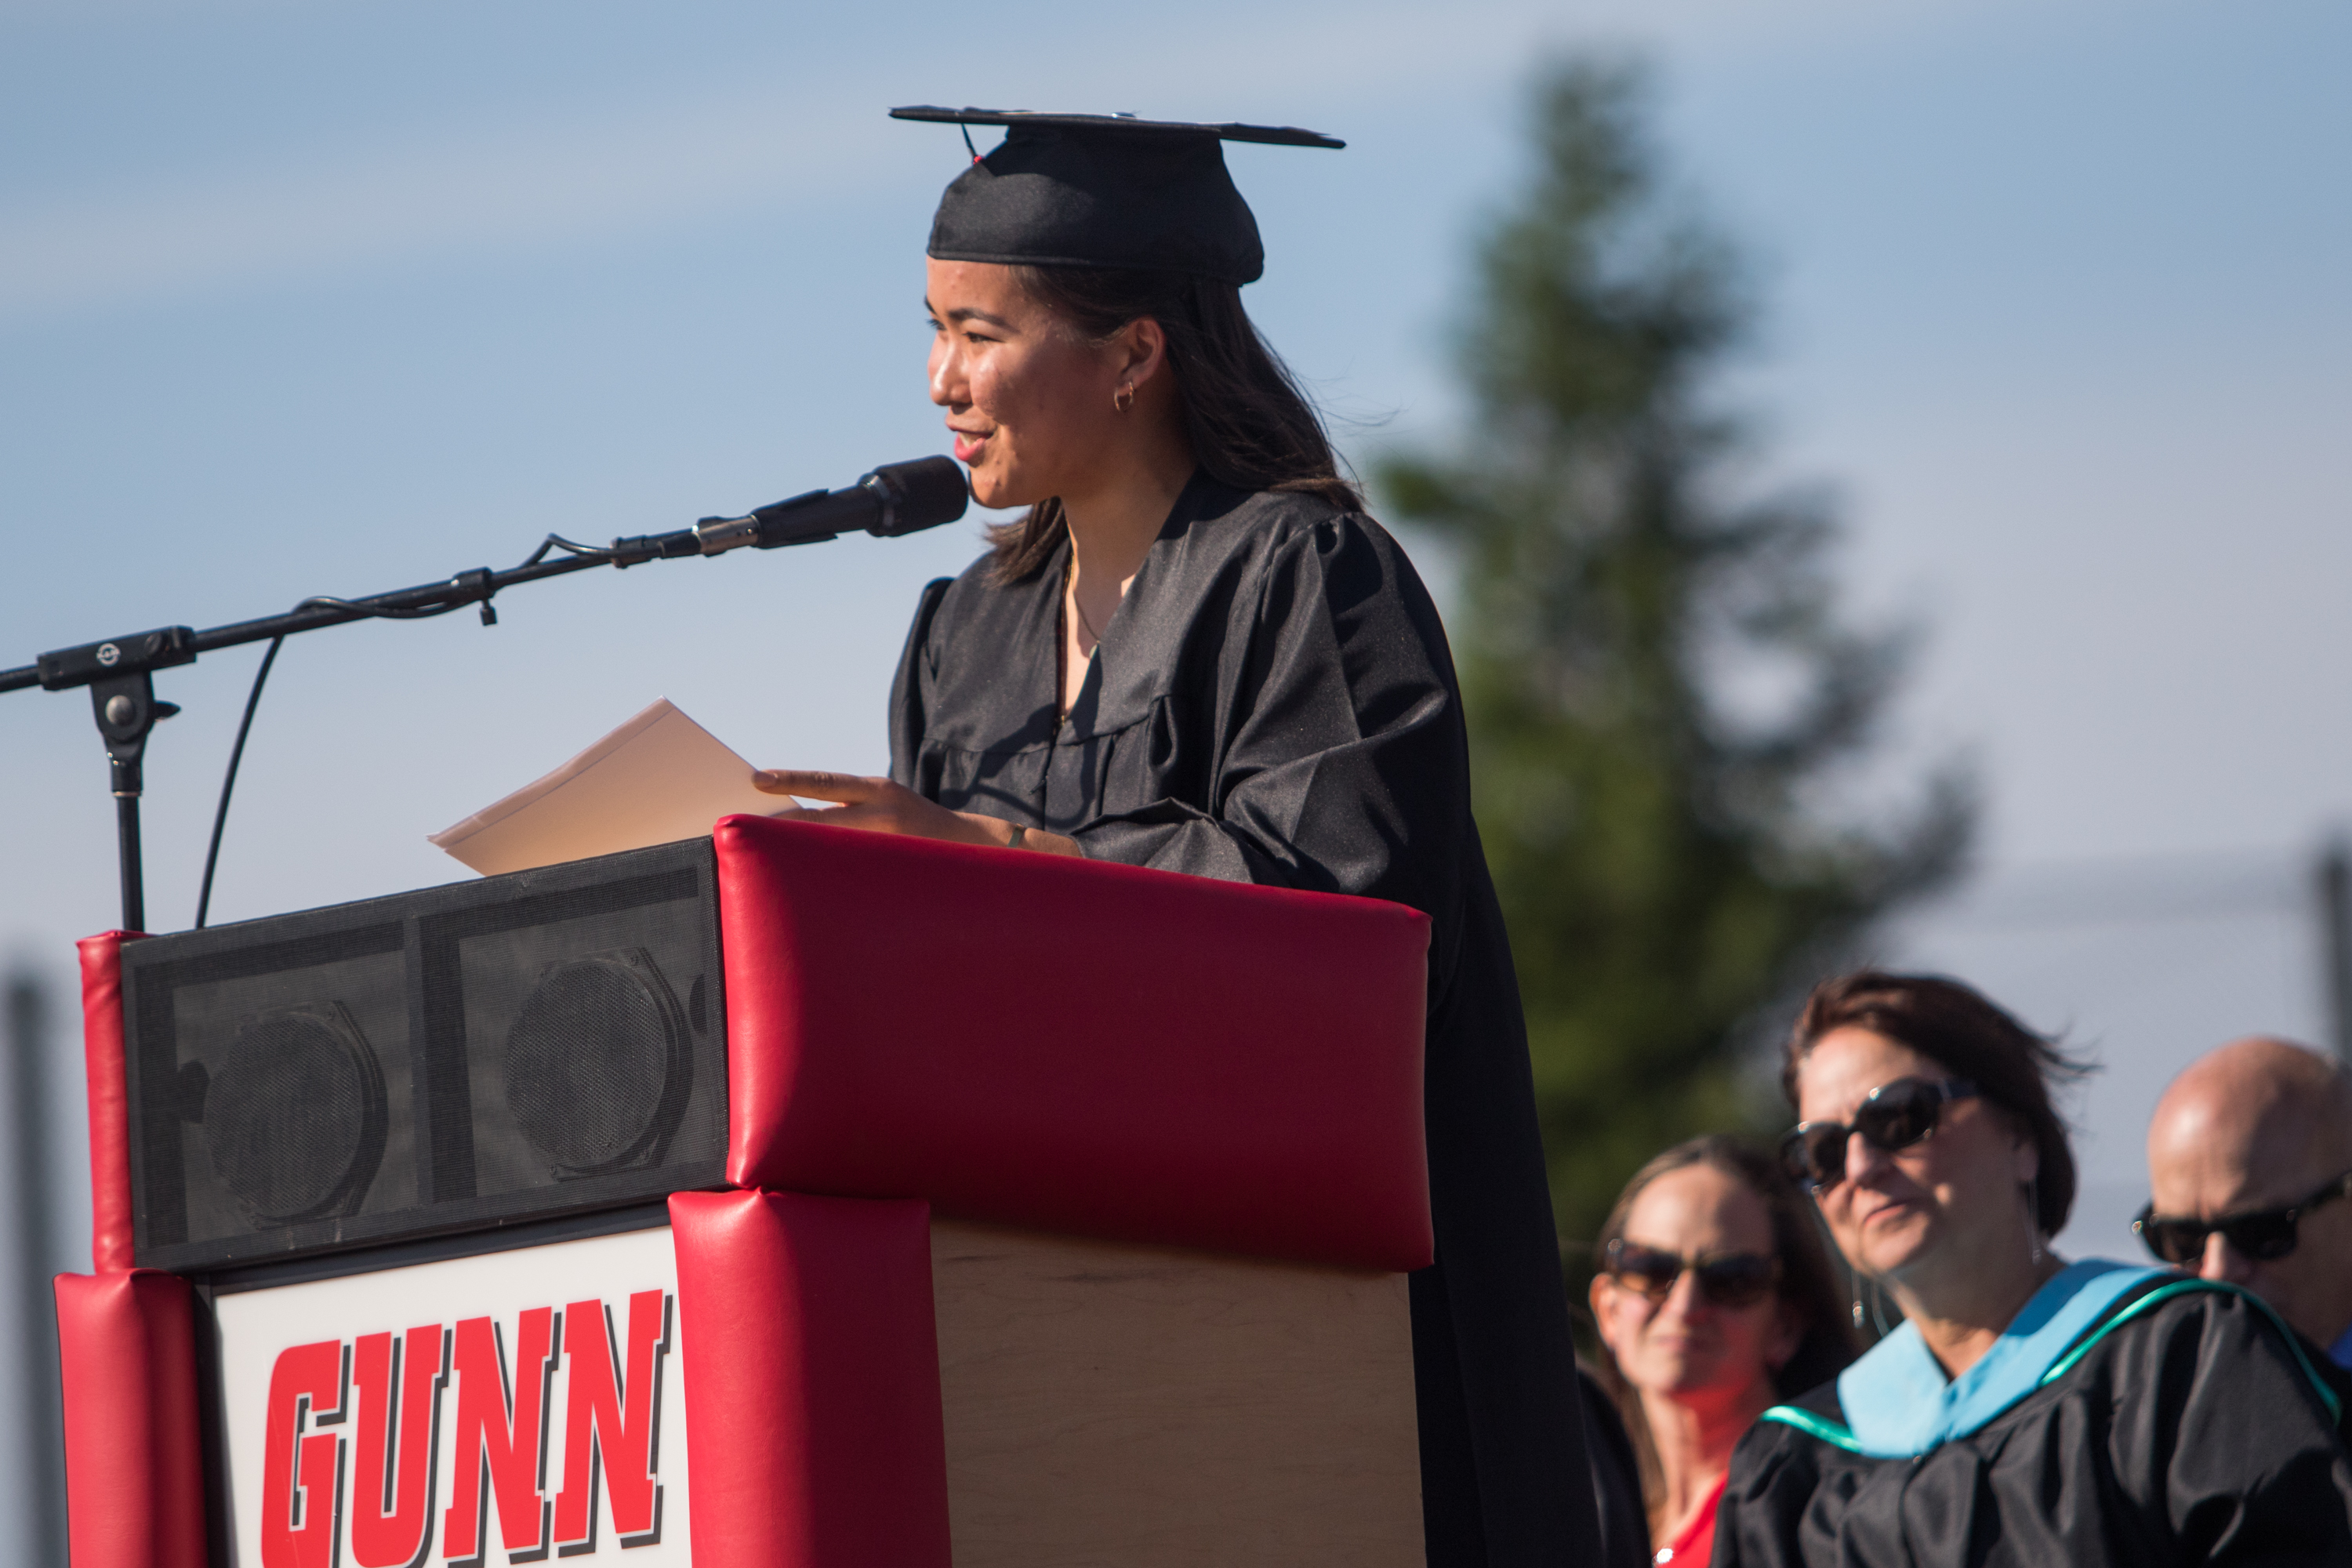 """During commencement speech,Gunn High School student Allie Chu opens up about her recent realization that her longtime focus on excelling at school has left her with an """"excellent facade."""""""